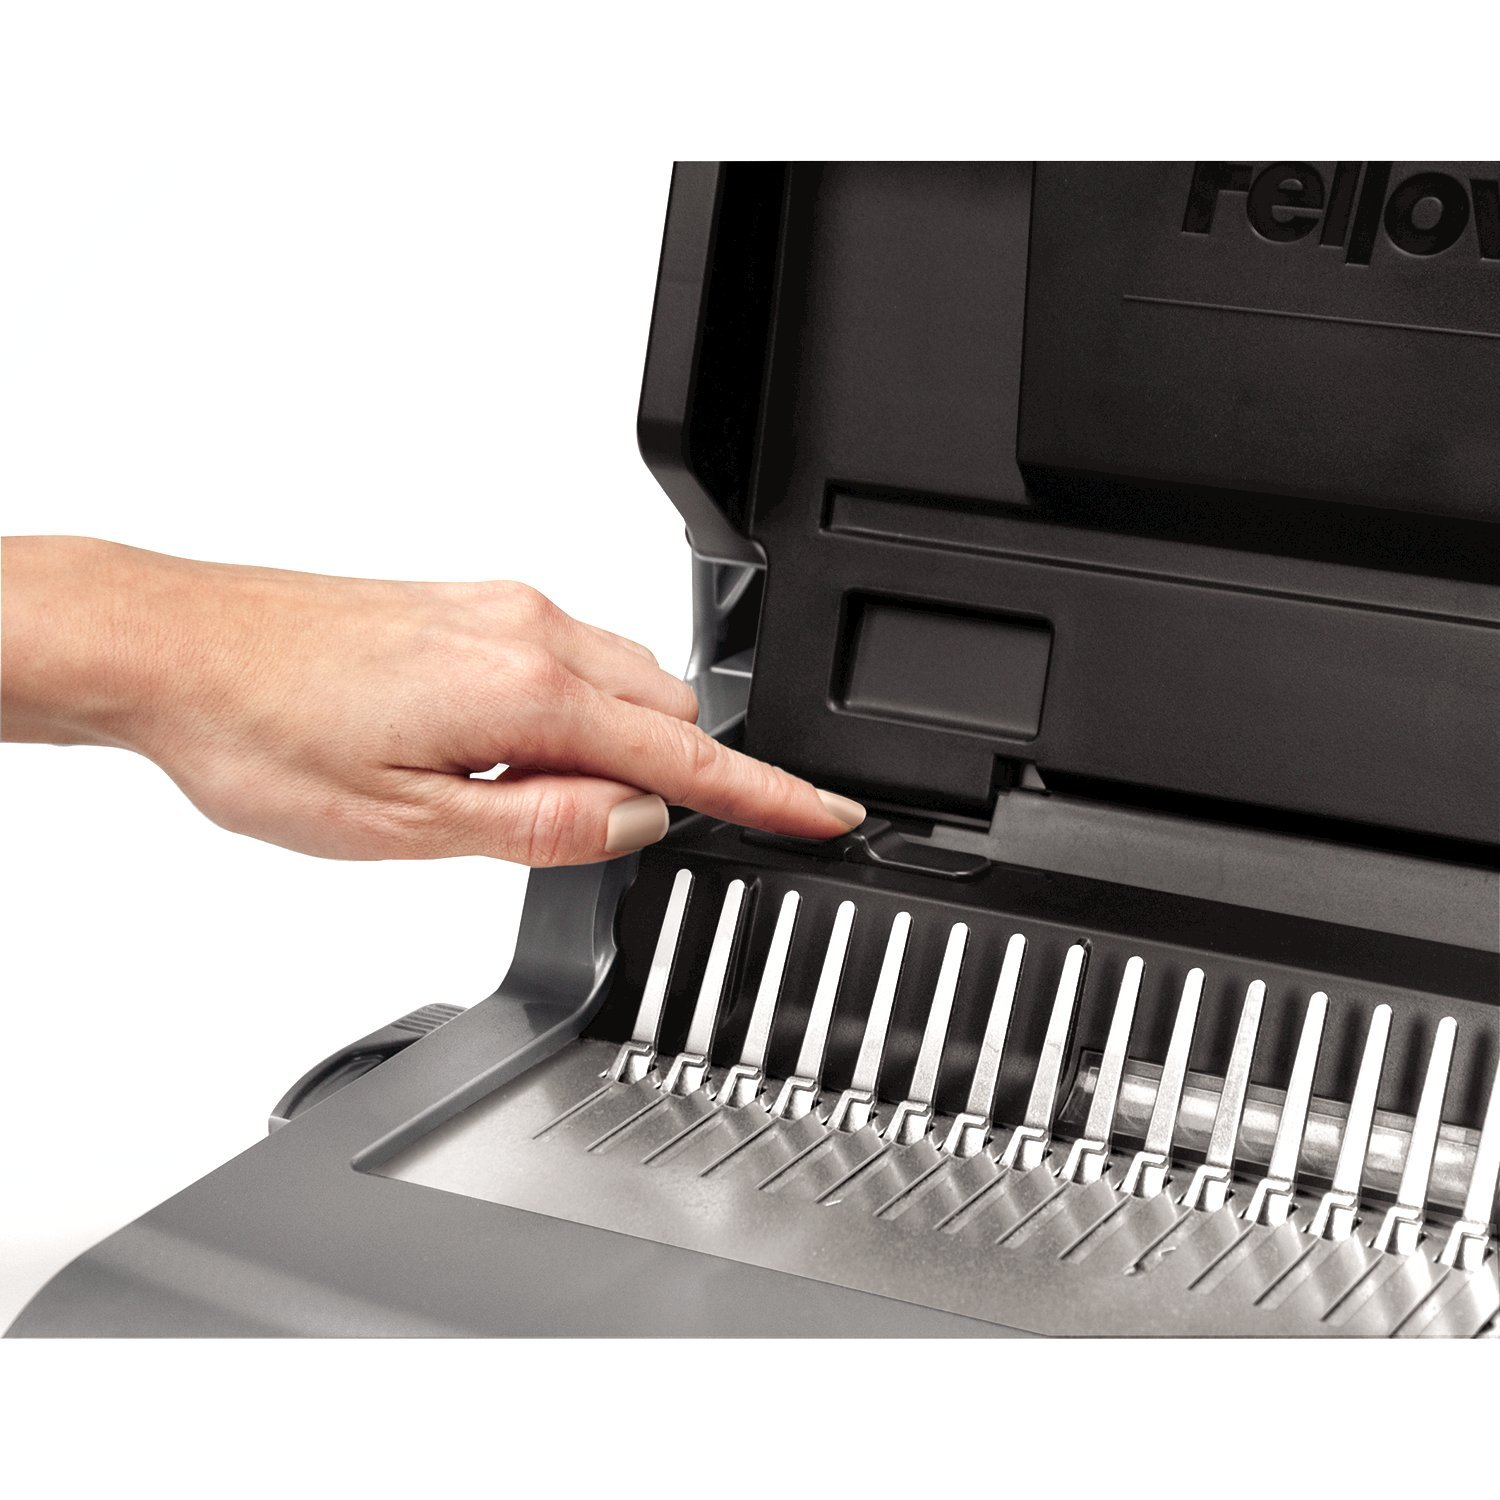 Fellowes Quasar A4 Manual Comb Binder by Fellowes (Image #5)